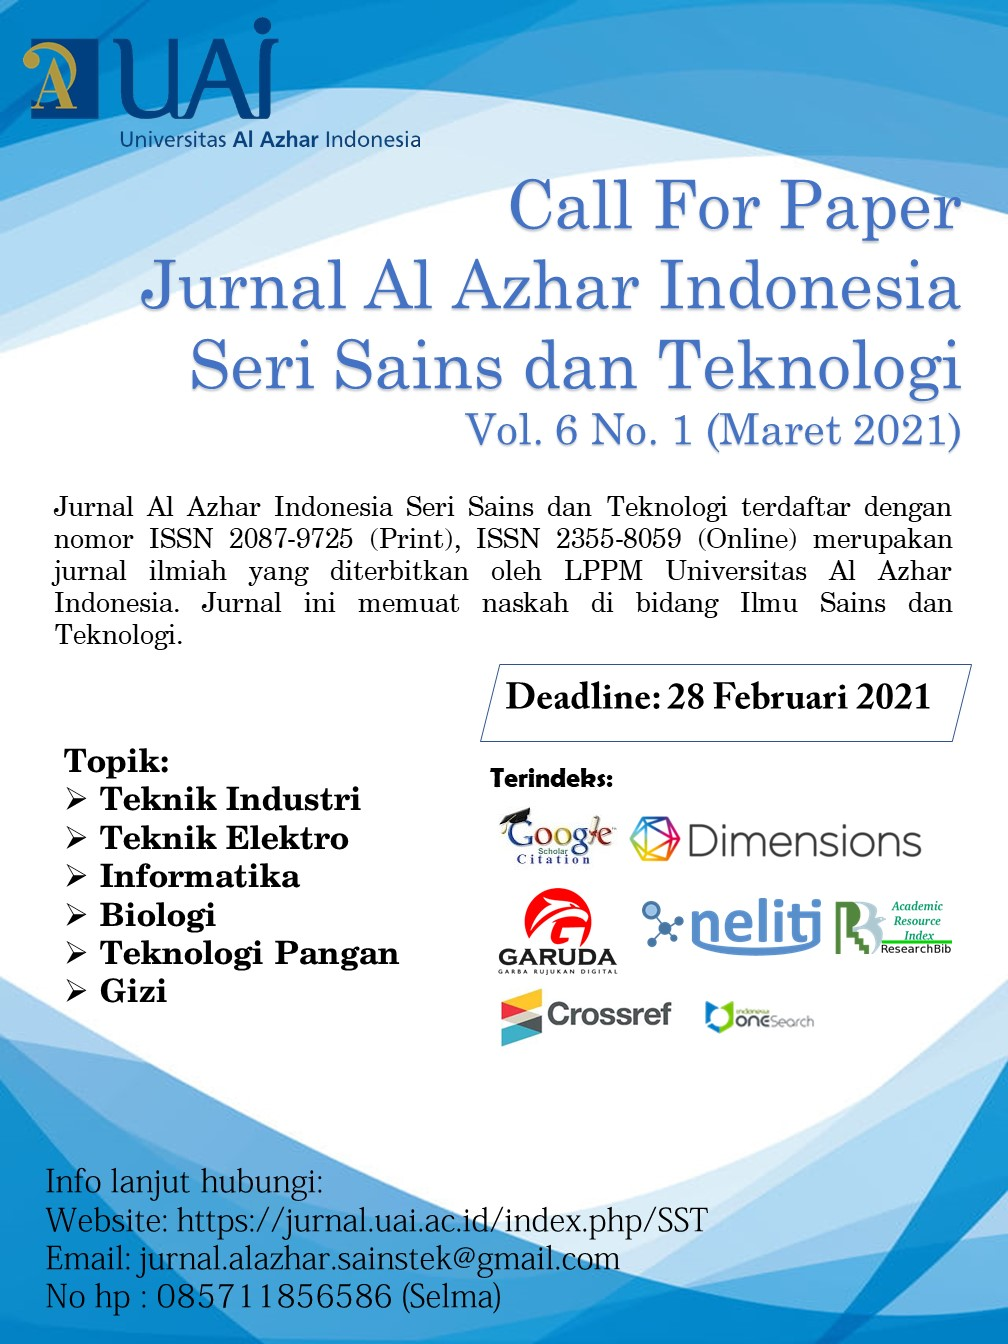 Call For Paper Sainstek Vol 6 No 1